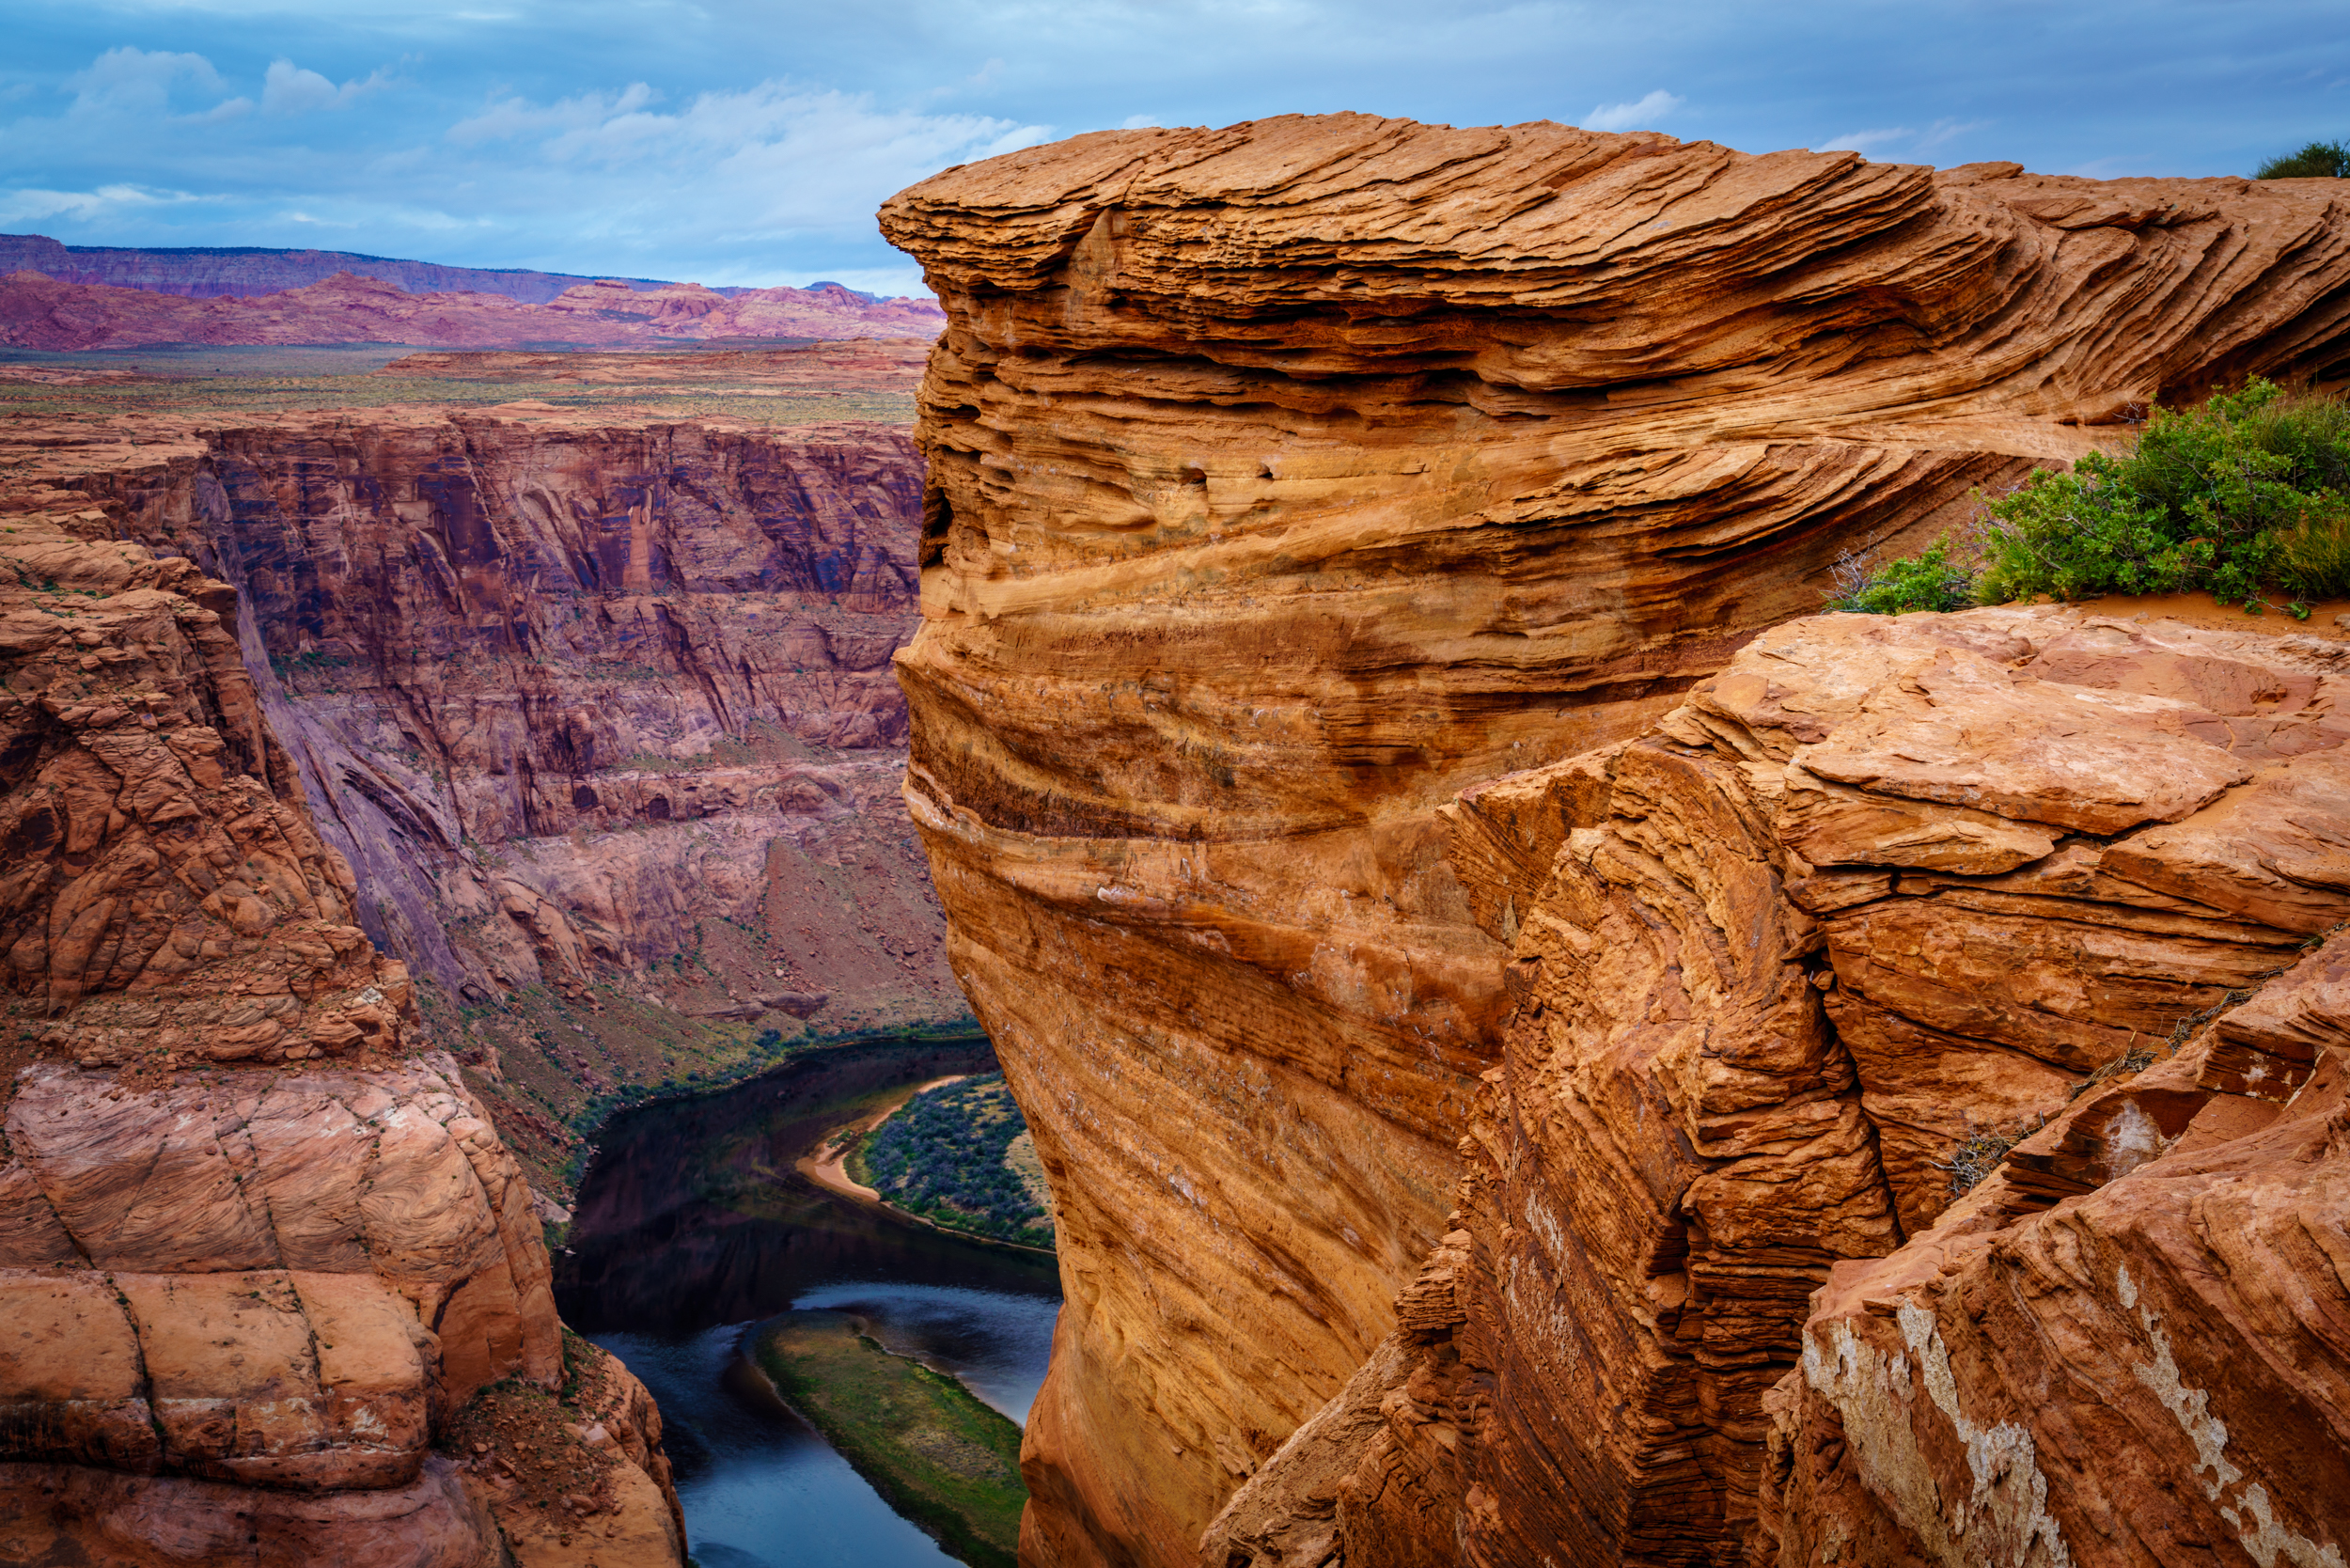 Horseshoe Bend sunrise - another view